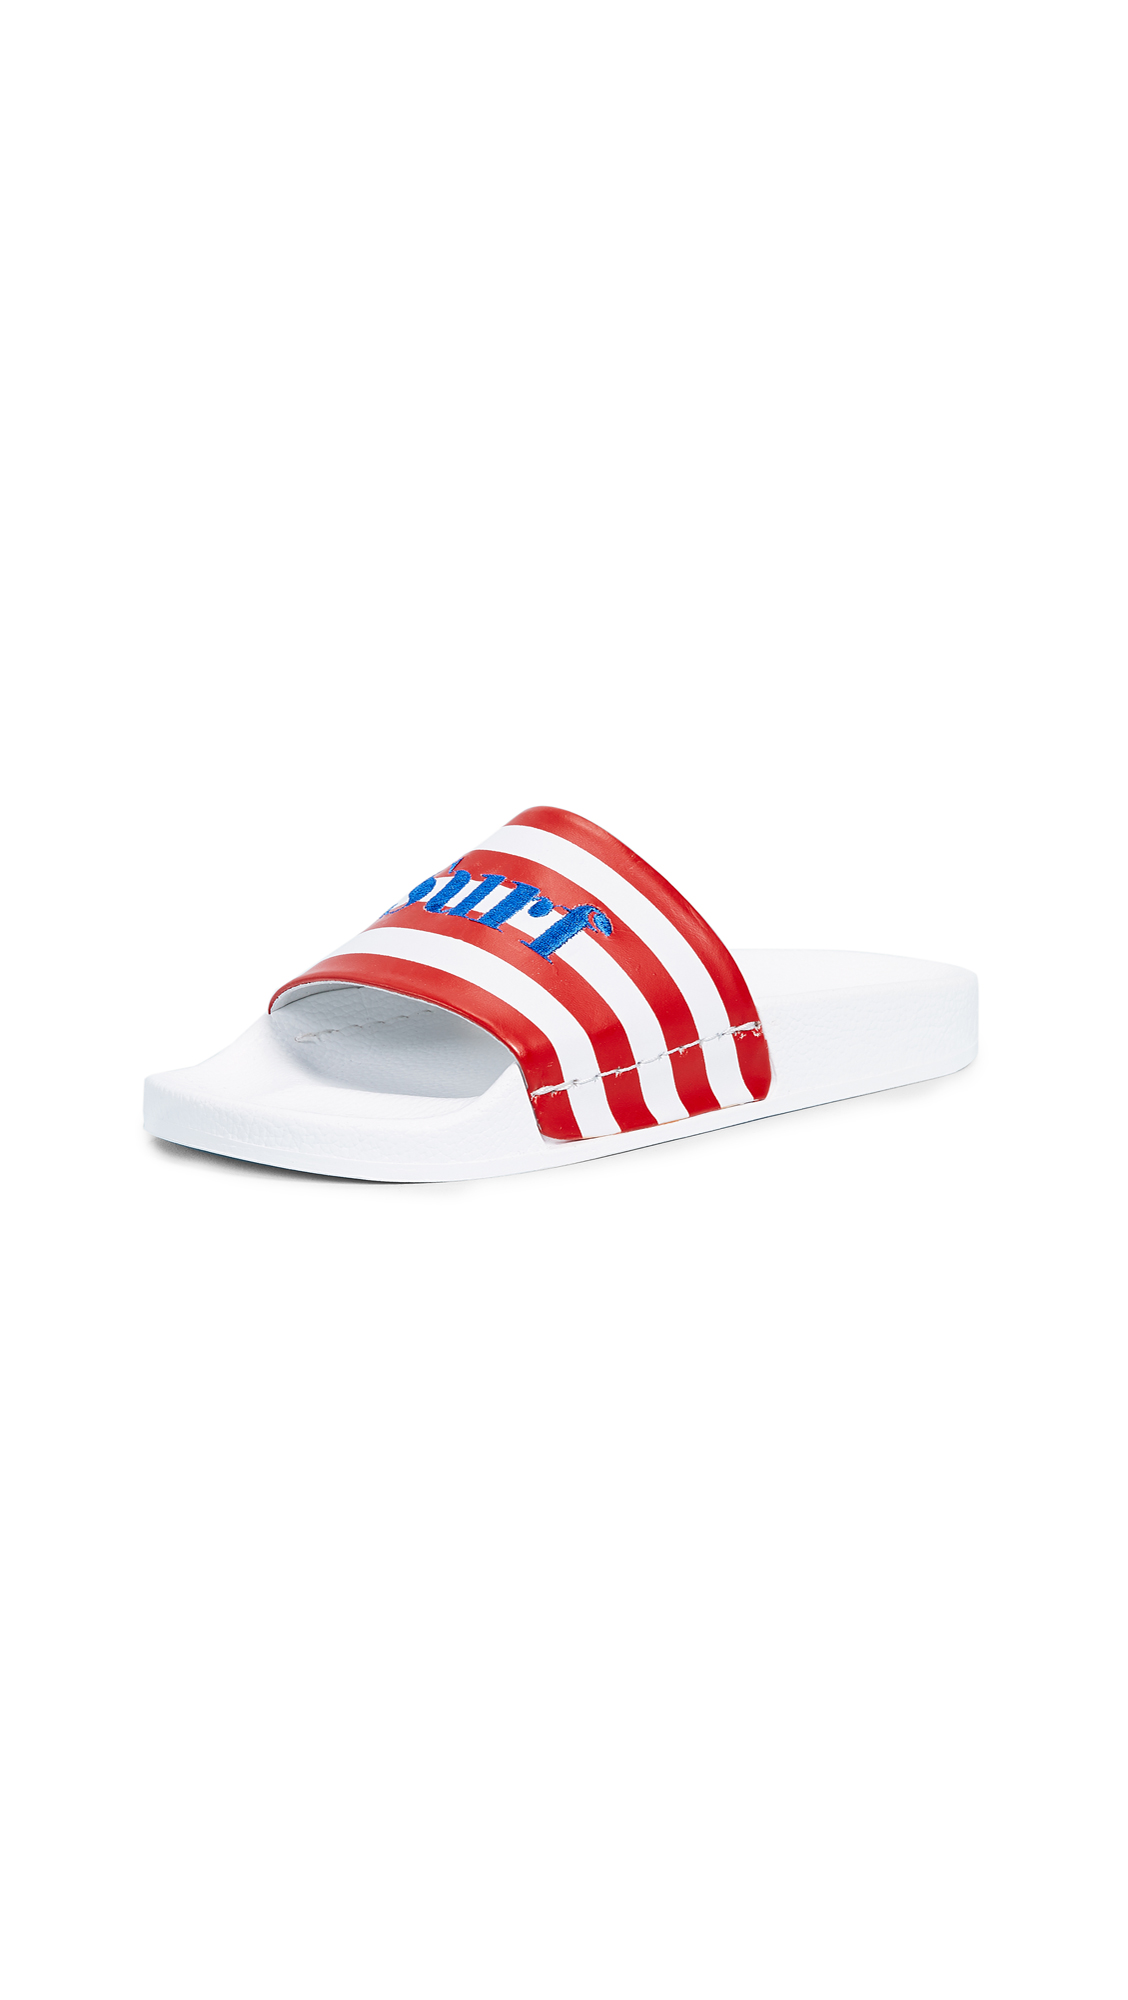 South Parade Swim Surf Pool Slides - White/Red Stripes